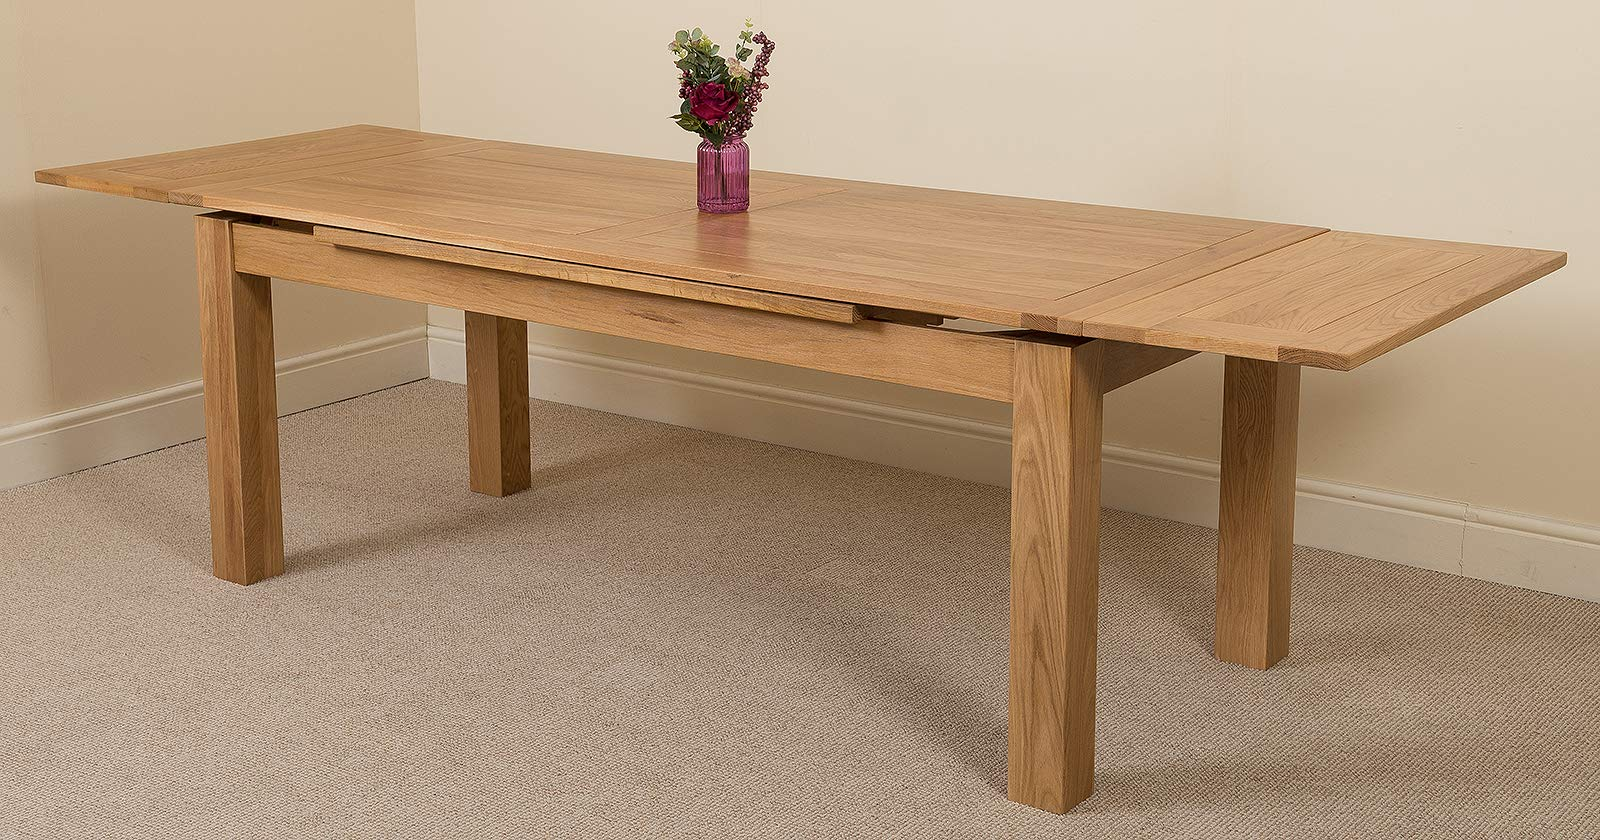 8 10 Seater Extendable Dining Table La Buy Online In Cambodia At Desertcart